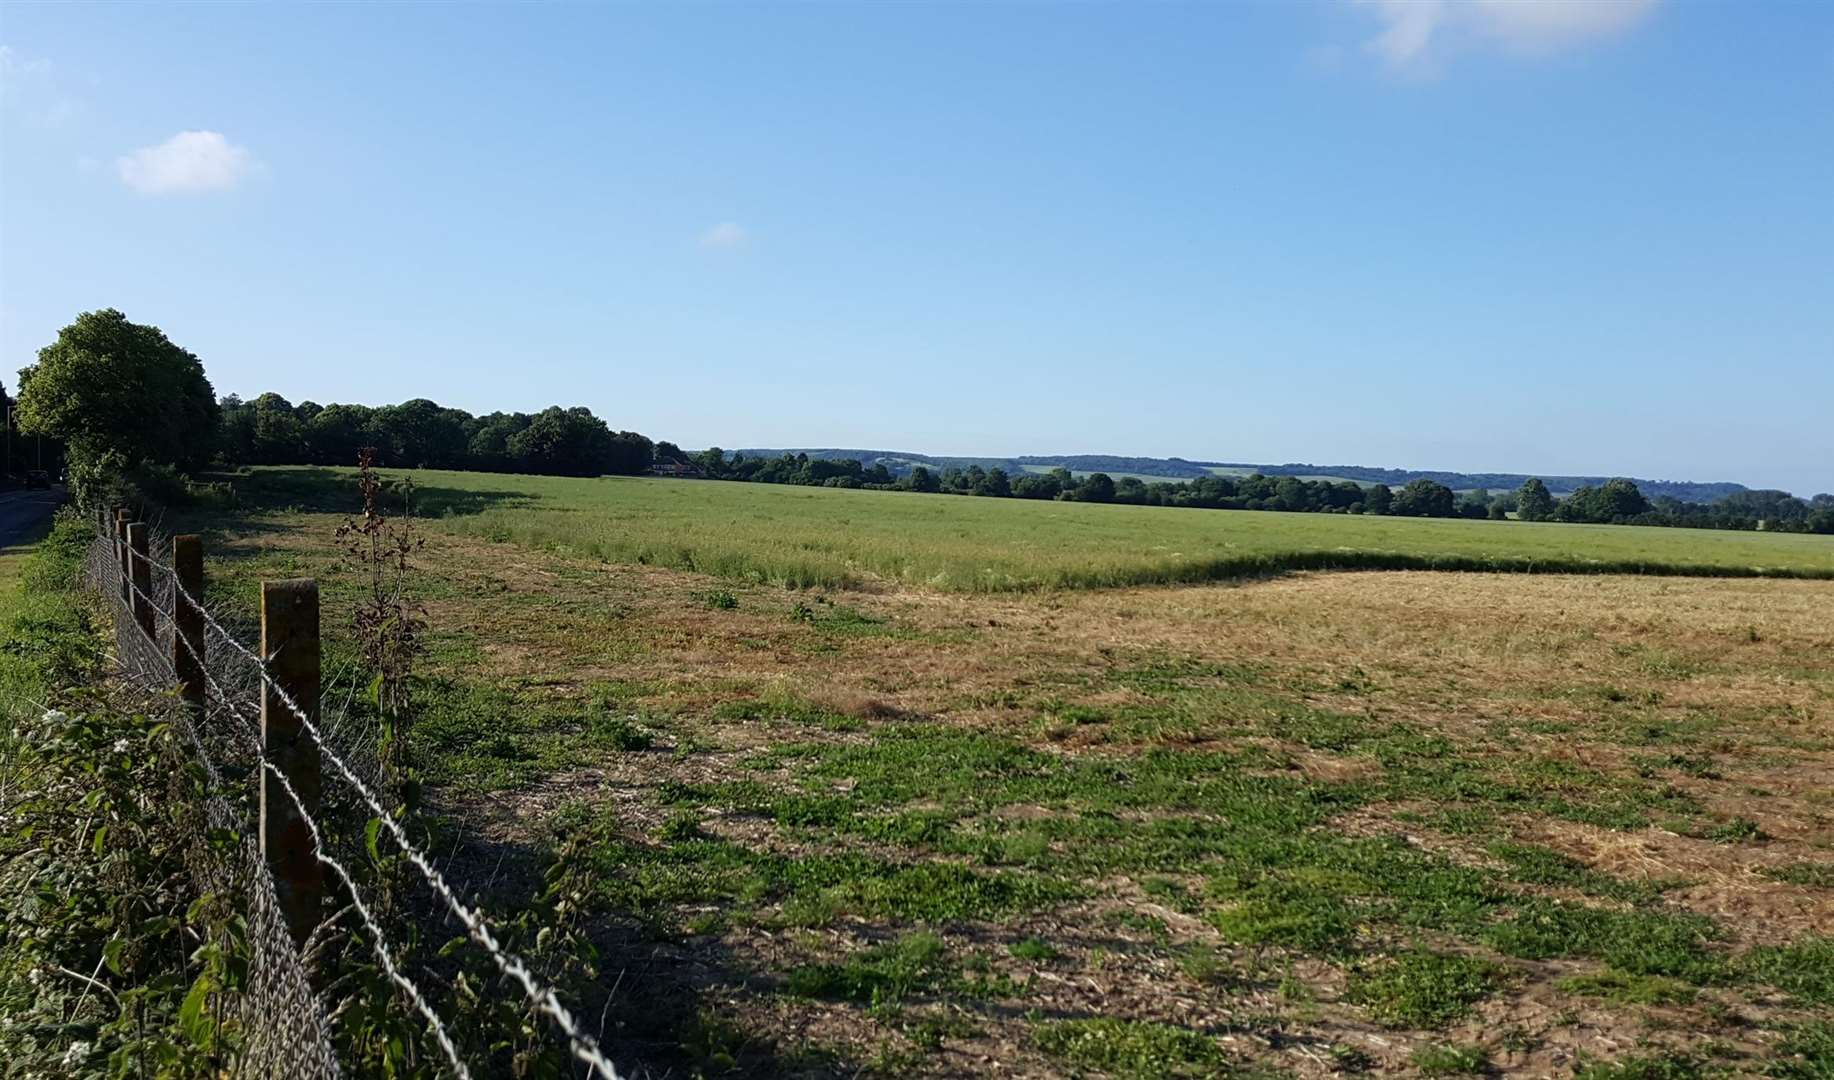 Fields off Willesborough Road have been earmarked for 750 homes